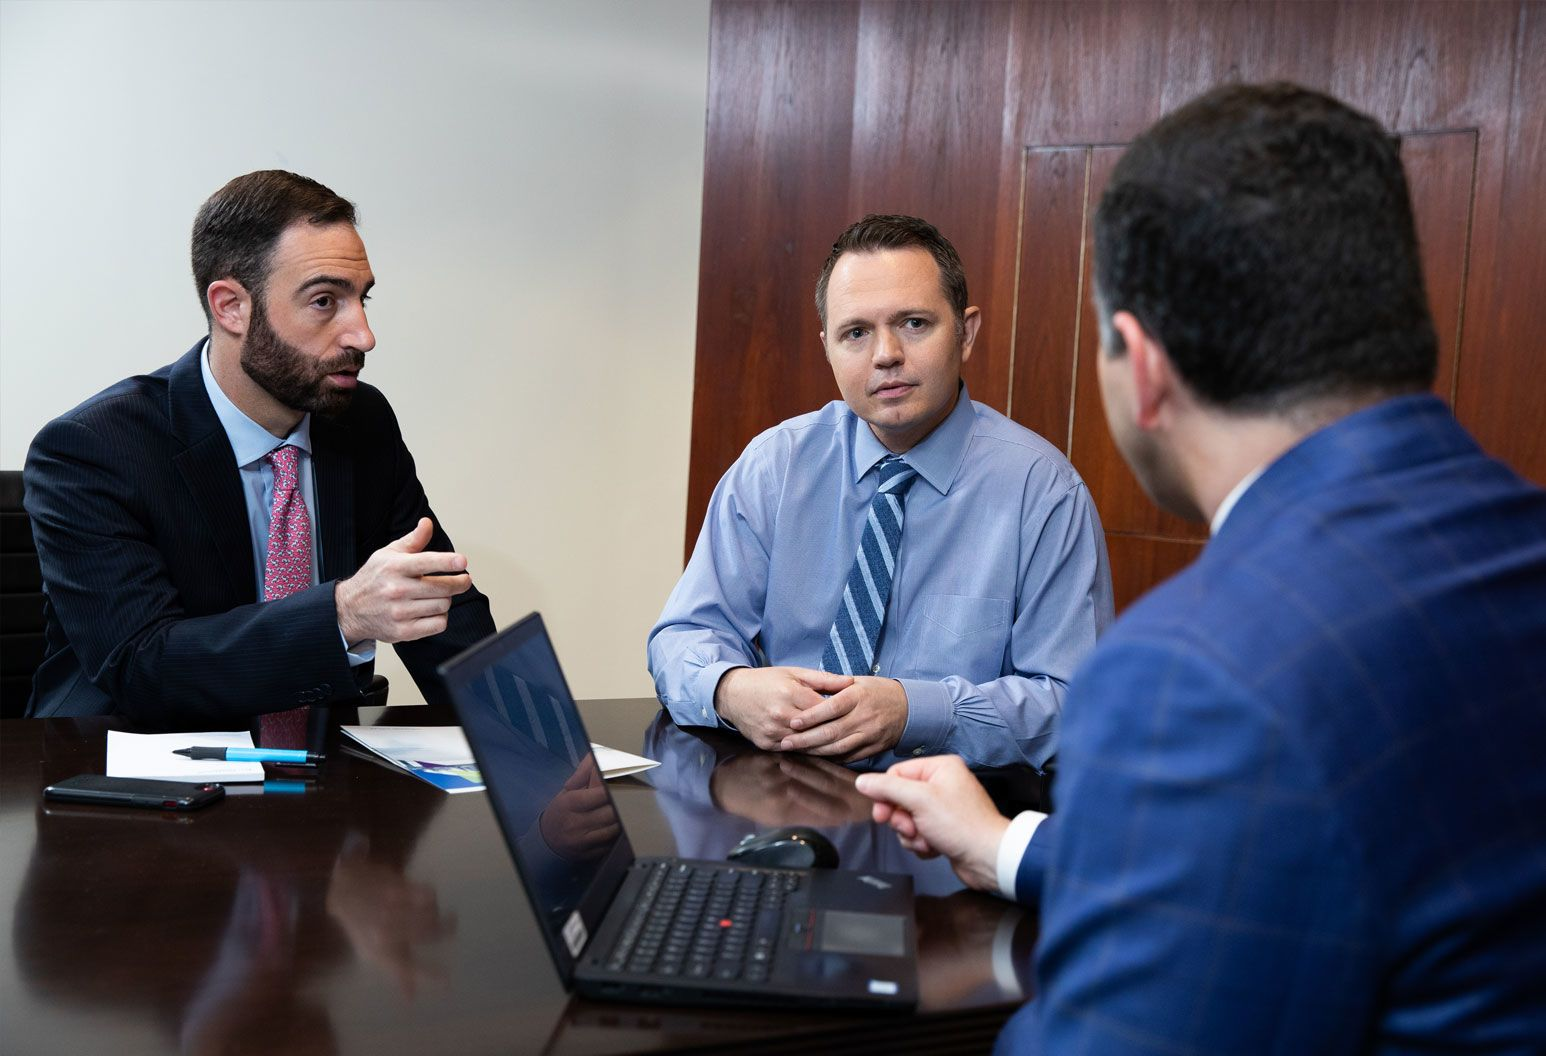 Three male doctors wearing suits sit in a conference room discussing a case. There is a laptop on the table.